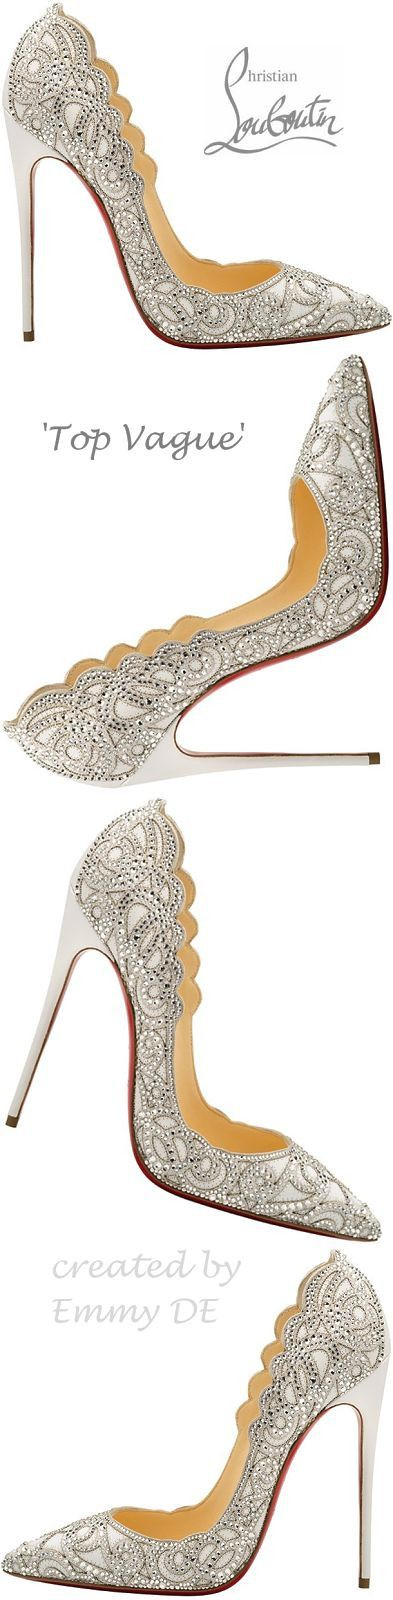 christina louboutin,women shoes,cheap christina louboutin,discount christina louboutin,fashion christina louboutin,wedding shoes, bridal shoes, luxury shoes,high heels,christina louboutin heels,beautiful high heels,christmas gifts,christmas,christmas guirlanda,christmas presentes,high heels pumps,high heels boots,high heels sandals,high heels sandals platform,high heels shoes,high heels shoes black,brown,women high heels,high heels for teens